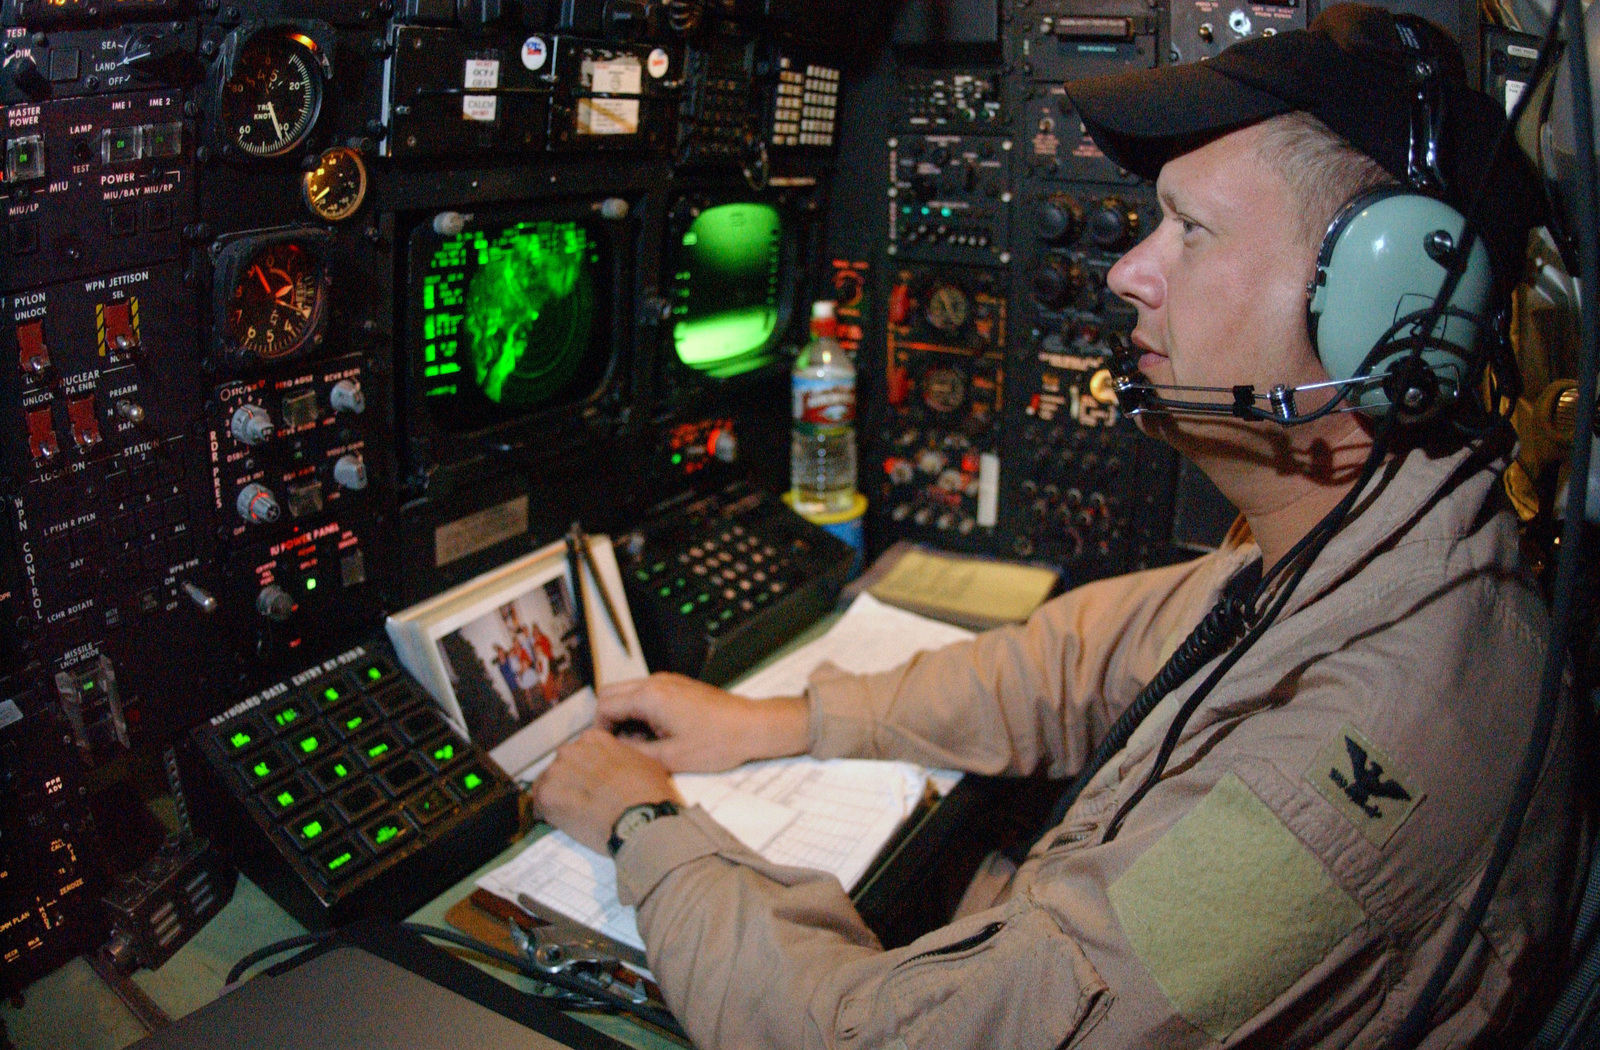 US Air Force (USAF) Colonel (COL) George Gagnon, Navigator, 40th Expeditionary Bomb Squadron (EBS), checks his instruments while listening to radio communications during a USAF B-52 Stratofortress close air support mission (CAS) over Iraq, during Operation IRAQI FREEDOM